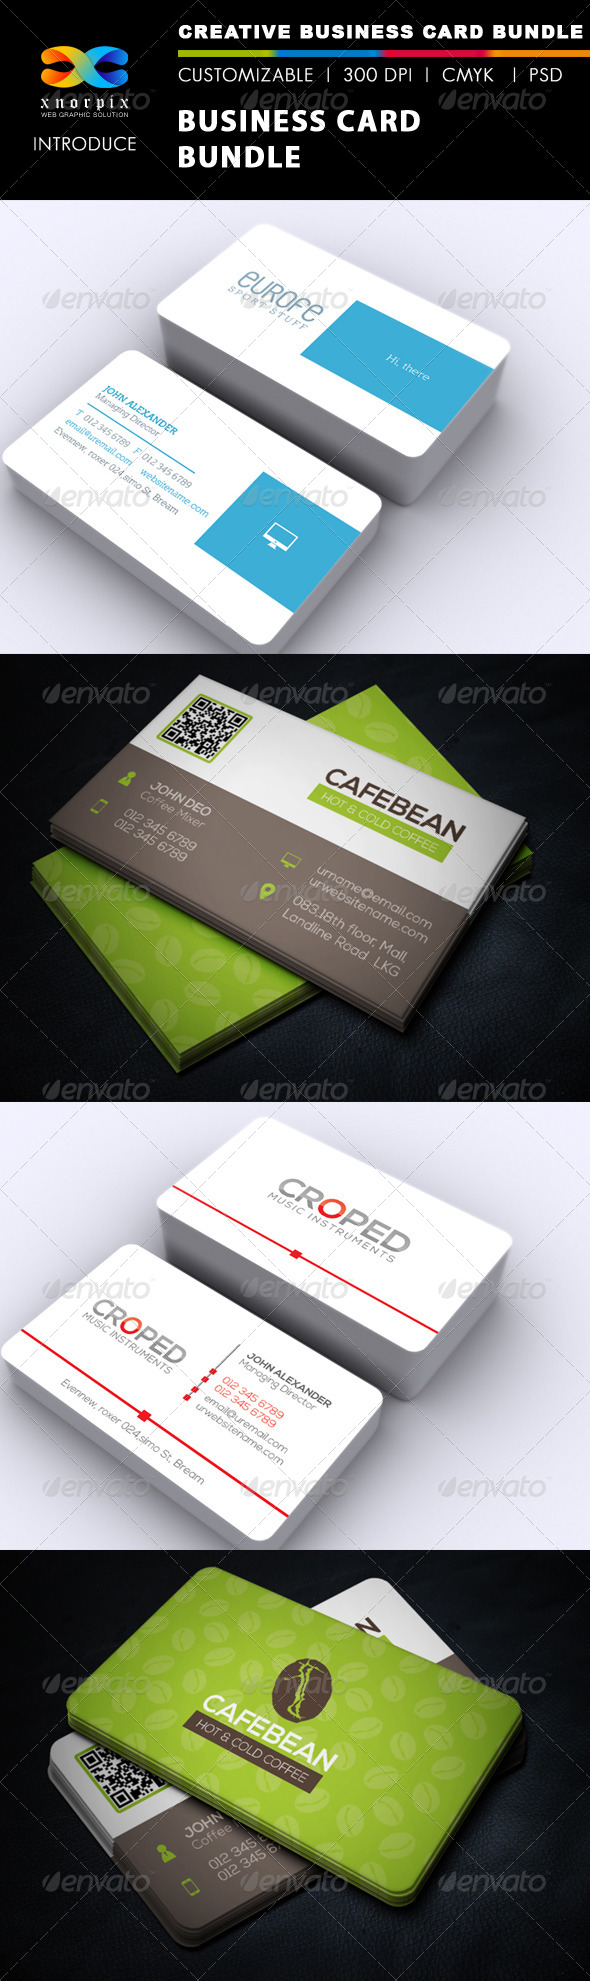 Business Card Bundle 3 in 1-Vol 34 - Corporate Business Cards